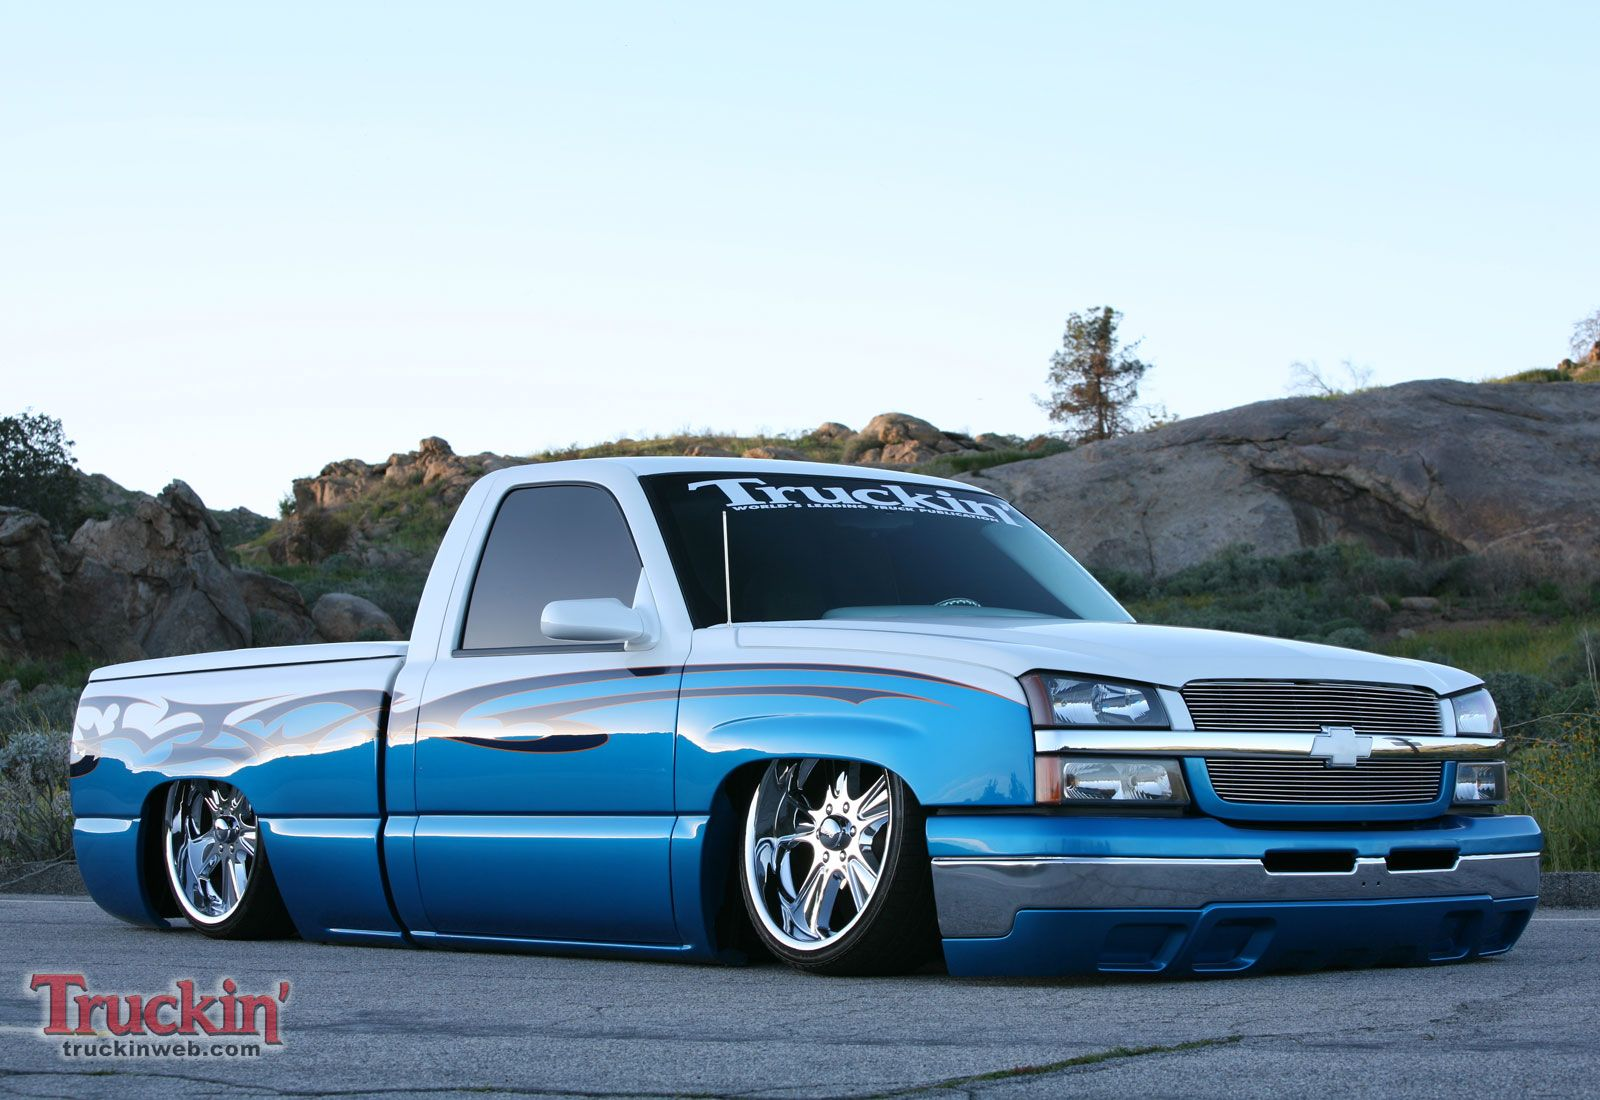 Pickup 2002 chevy pickup : Pimped Out Chevy Trucks | Tricked Out Chevy Trucks '03 chevy ...